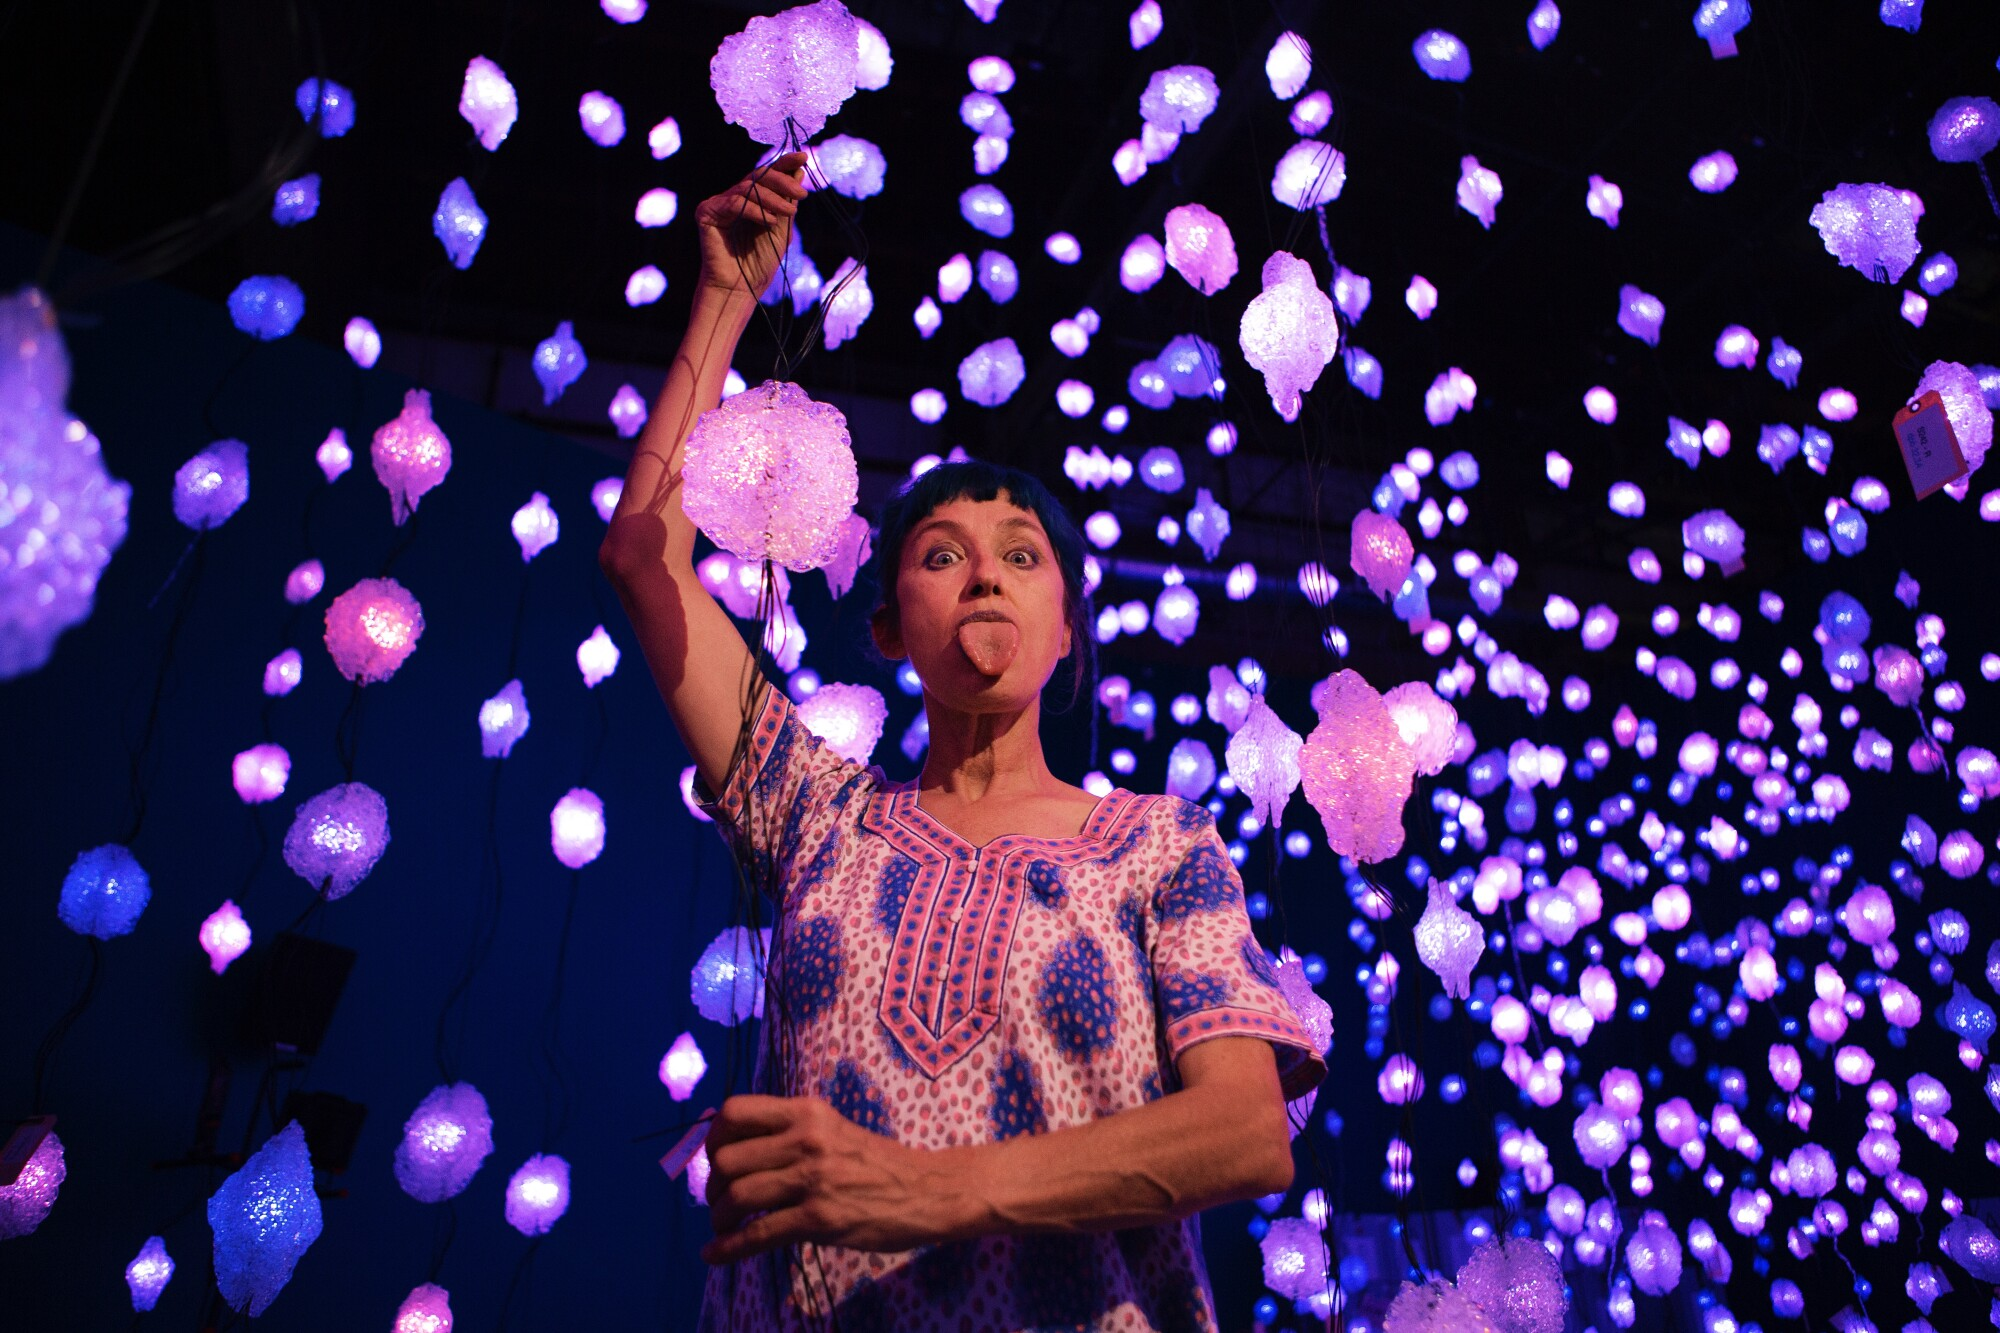 Pipilotti Rist sticks out her tongue while standing amid dozens of pink and purple lights that dangle from the ceiling.